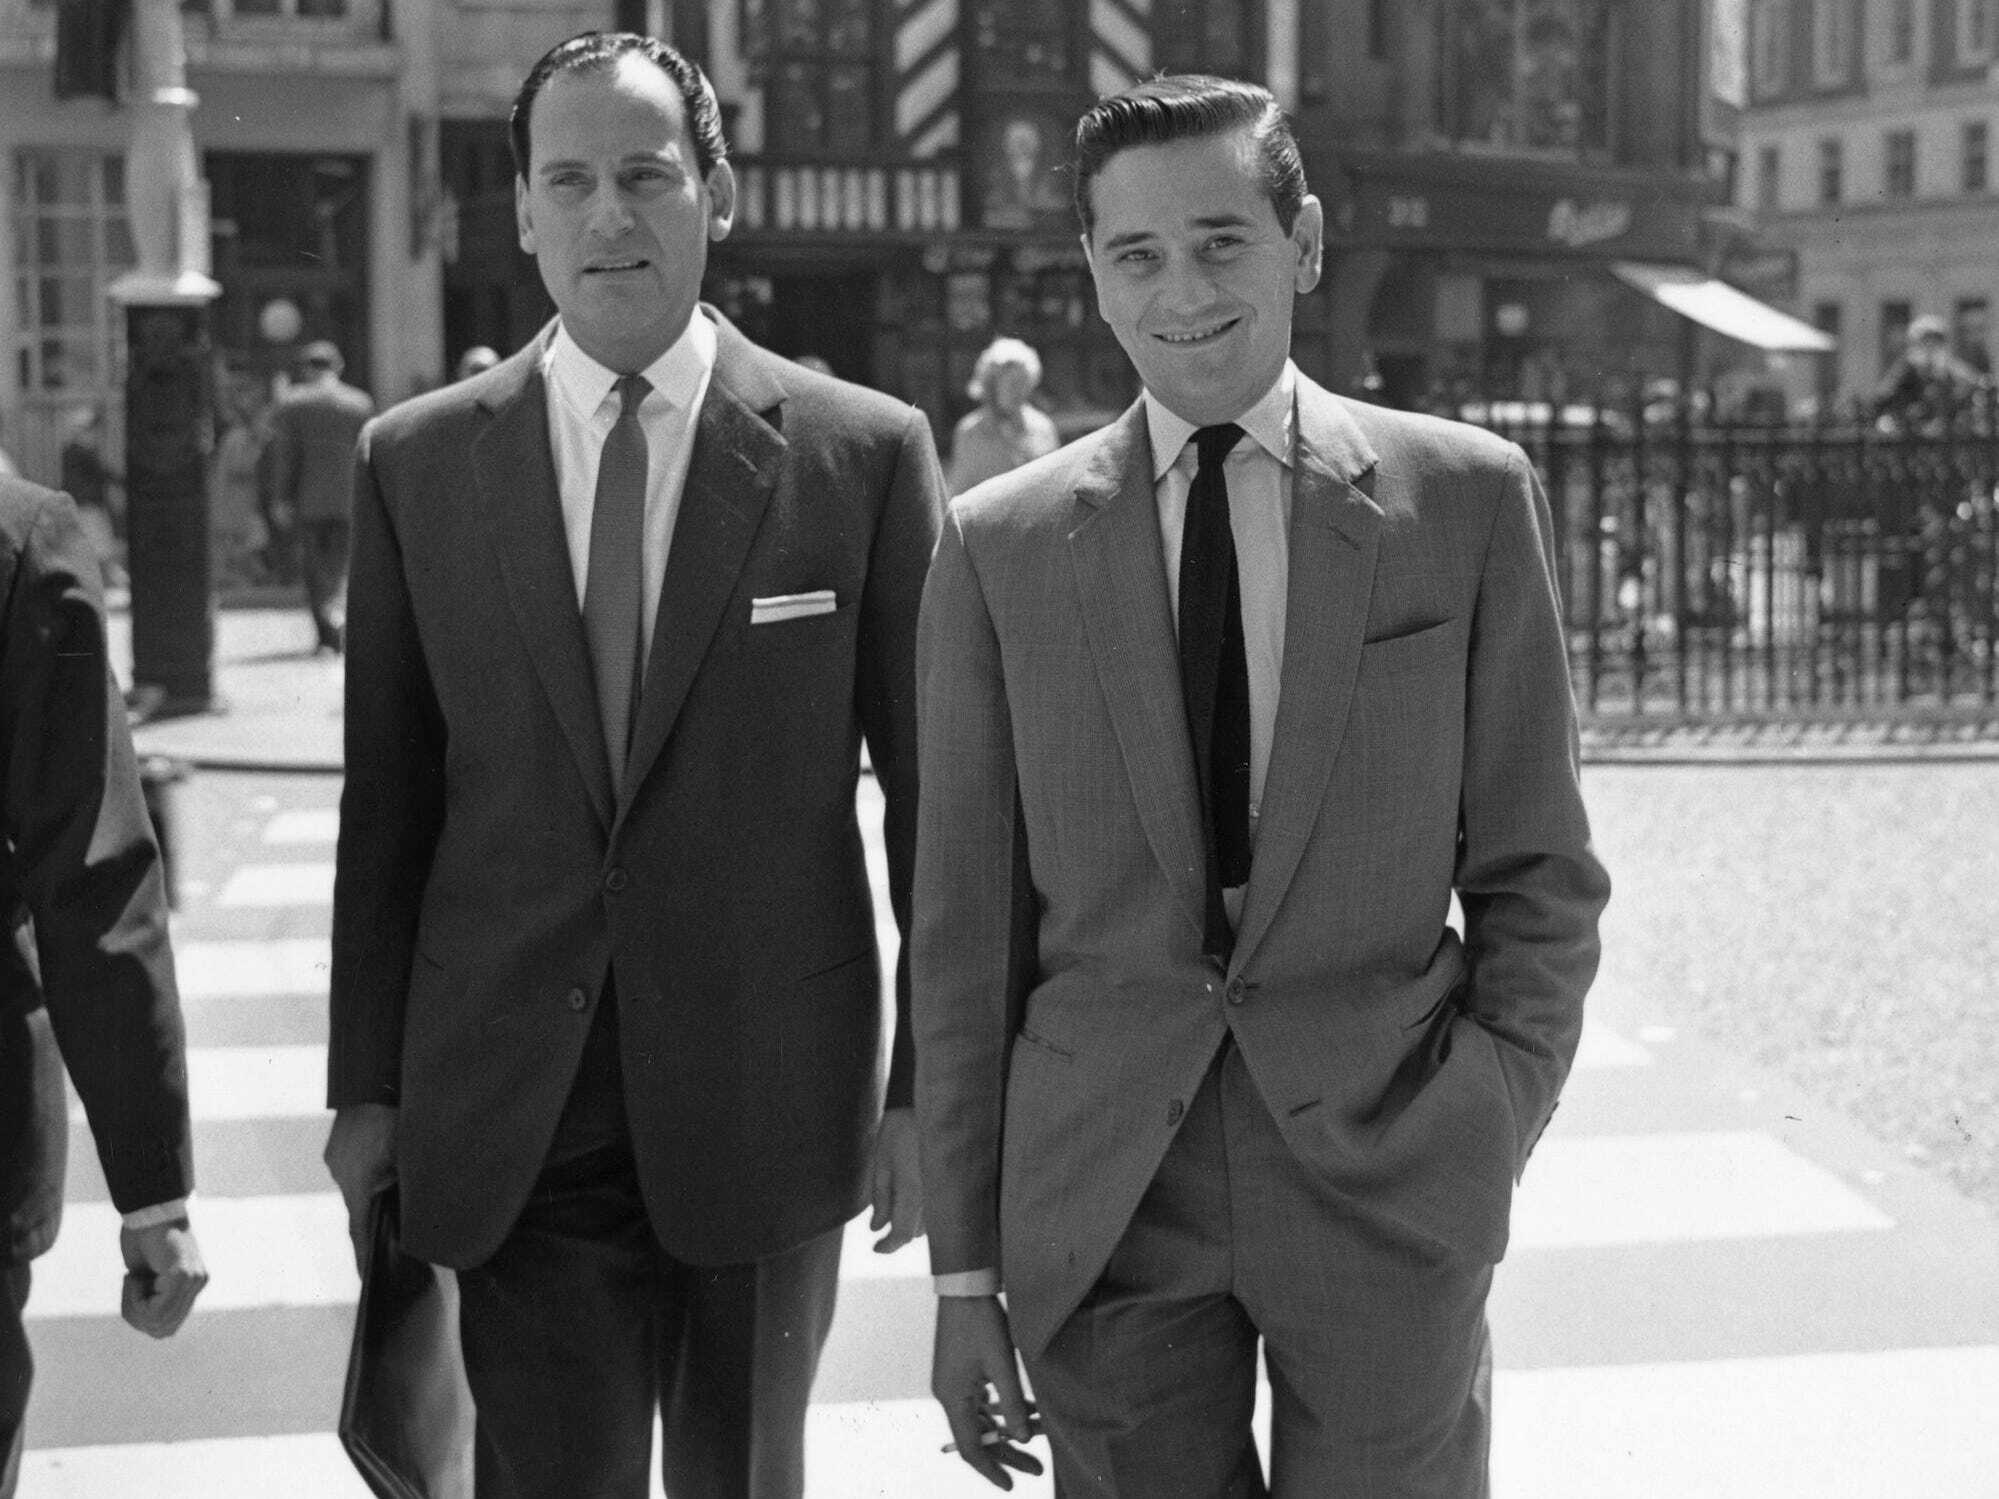 Suits were the only business attire in the 20th century